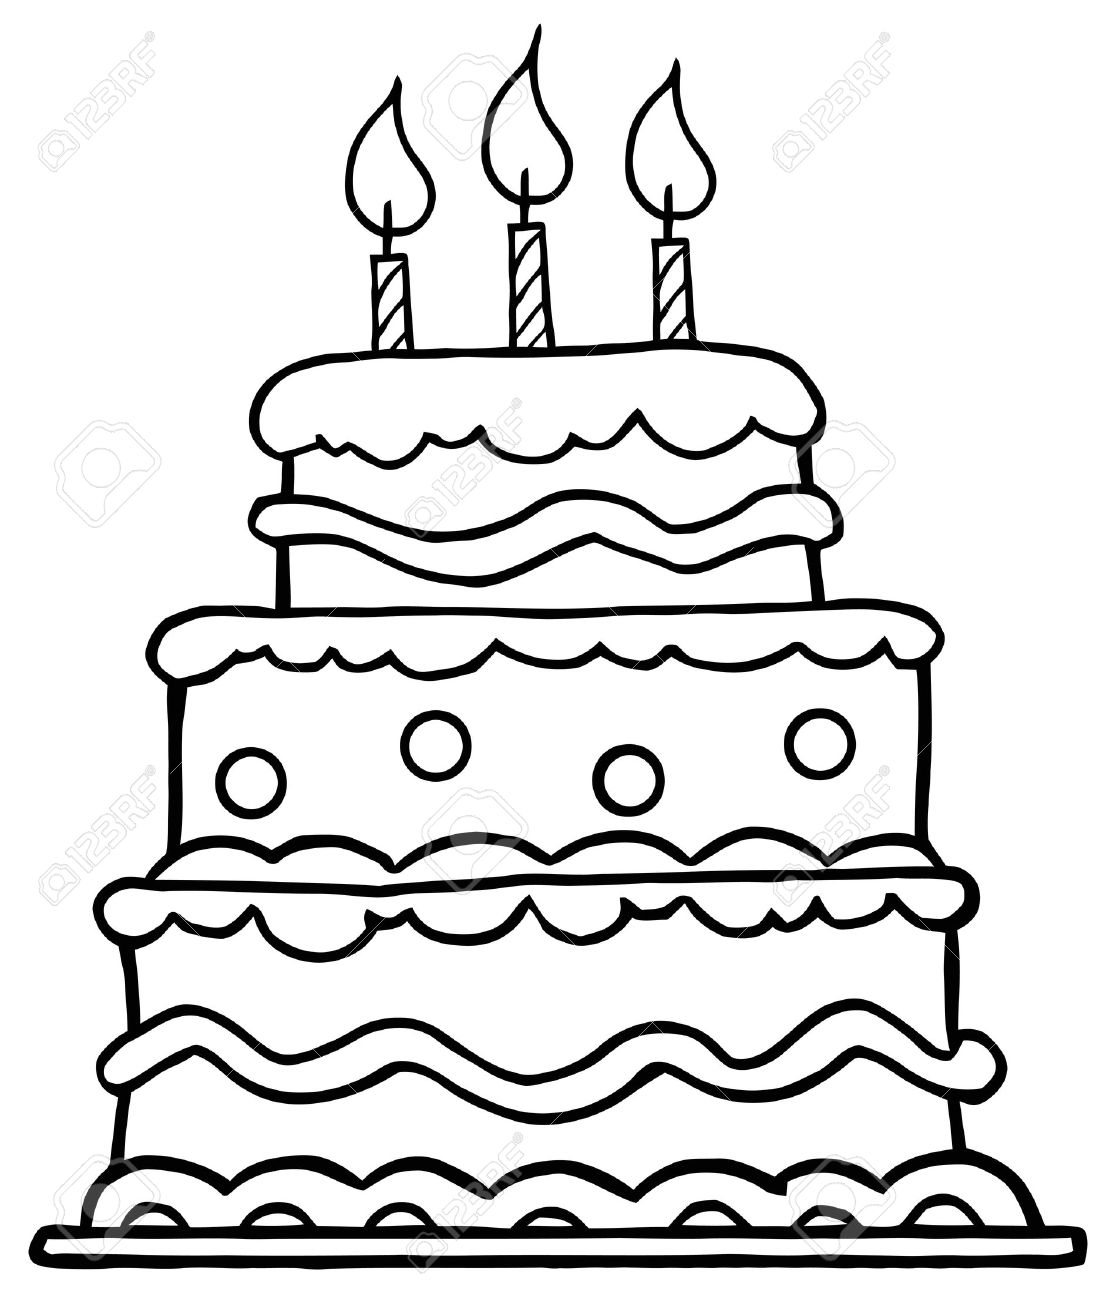 Free coloring page birthday cake